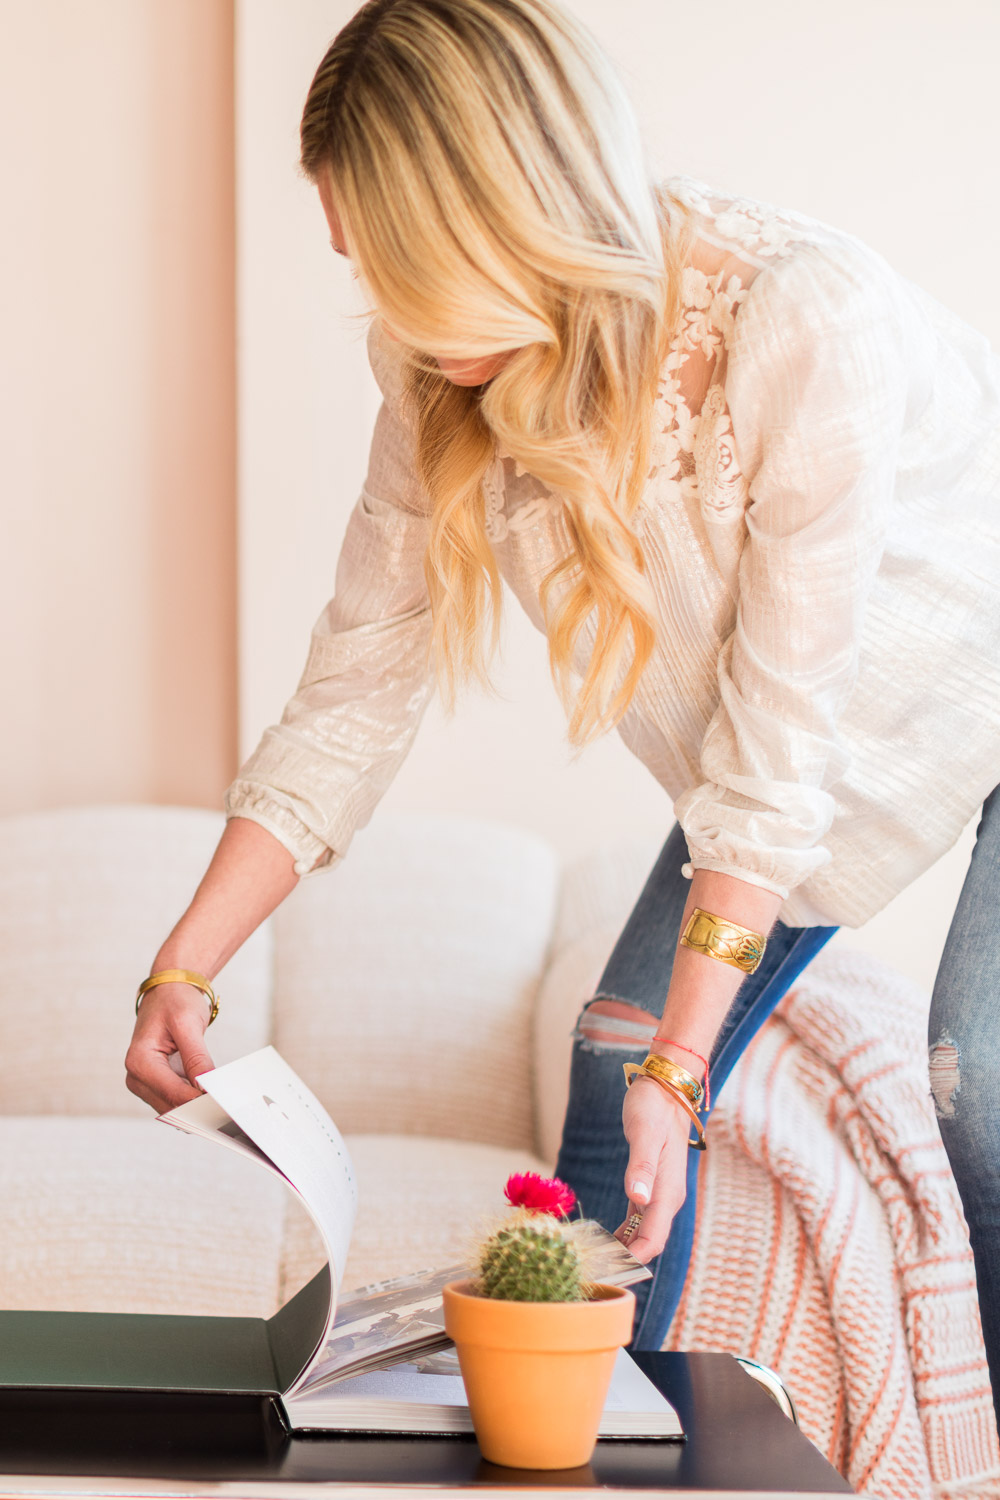 US News and World Report with Alyssa Rosenheck affordable Styling Tips for your Living Room - Alyssa Rosenheck Photographer and Lifestyle Expert